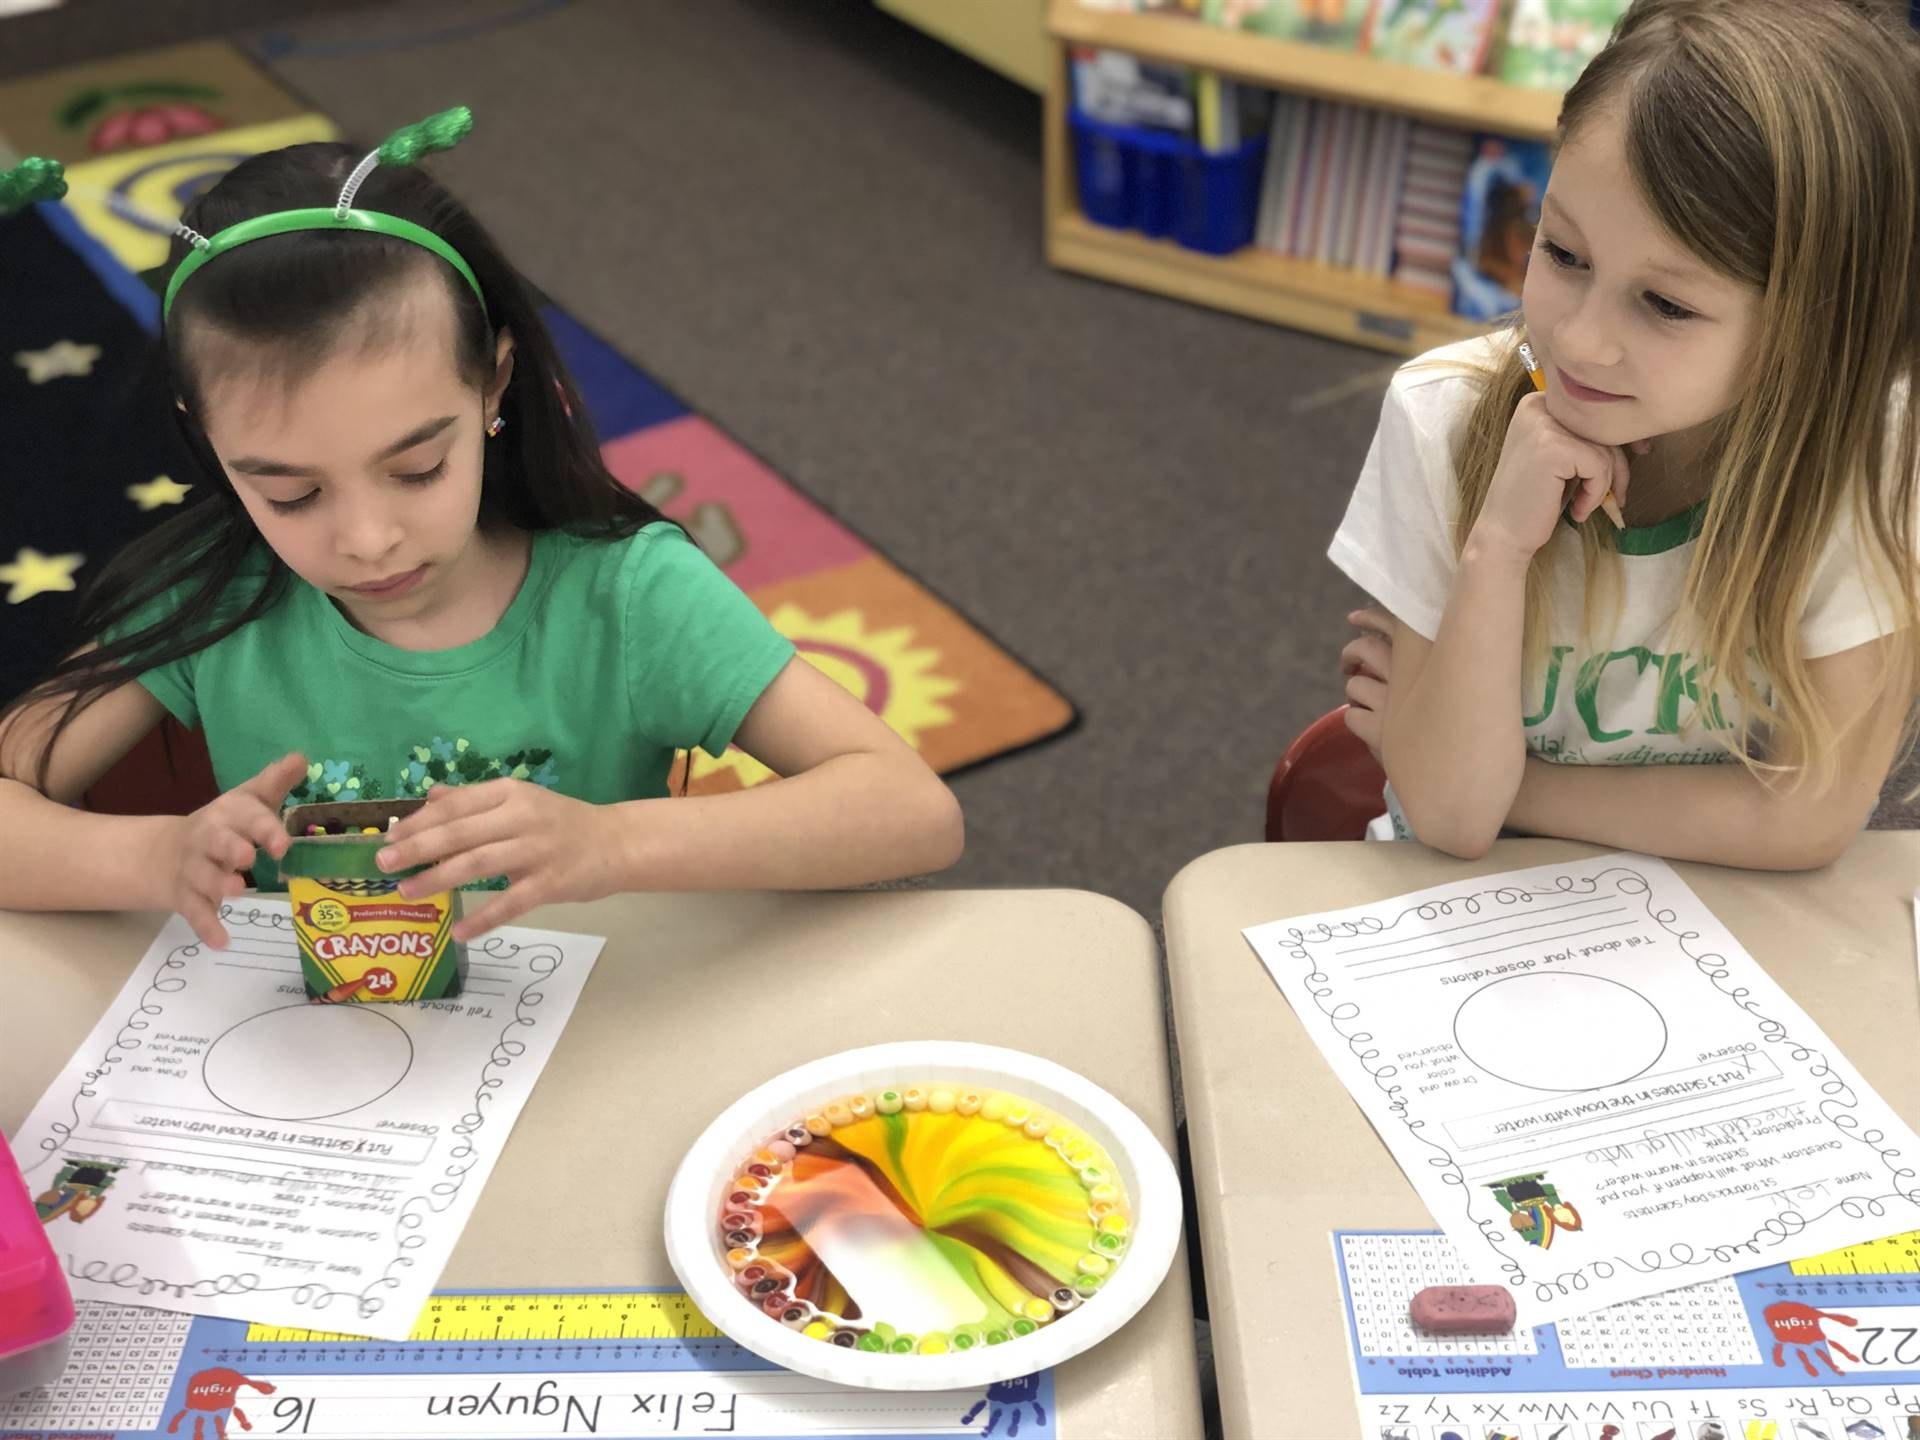 Two students conducting a science experiment with Skittles